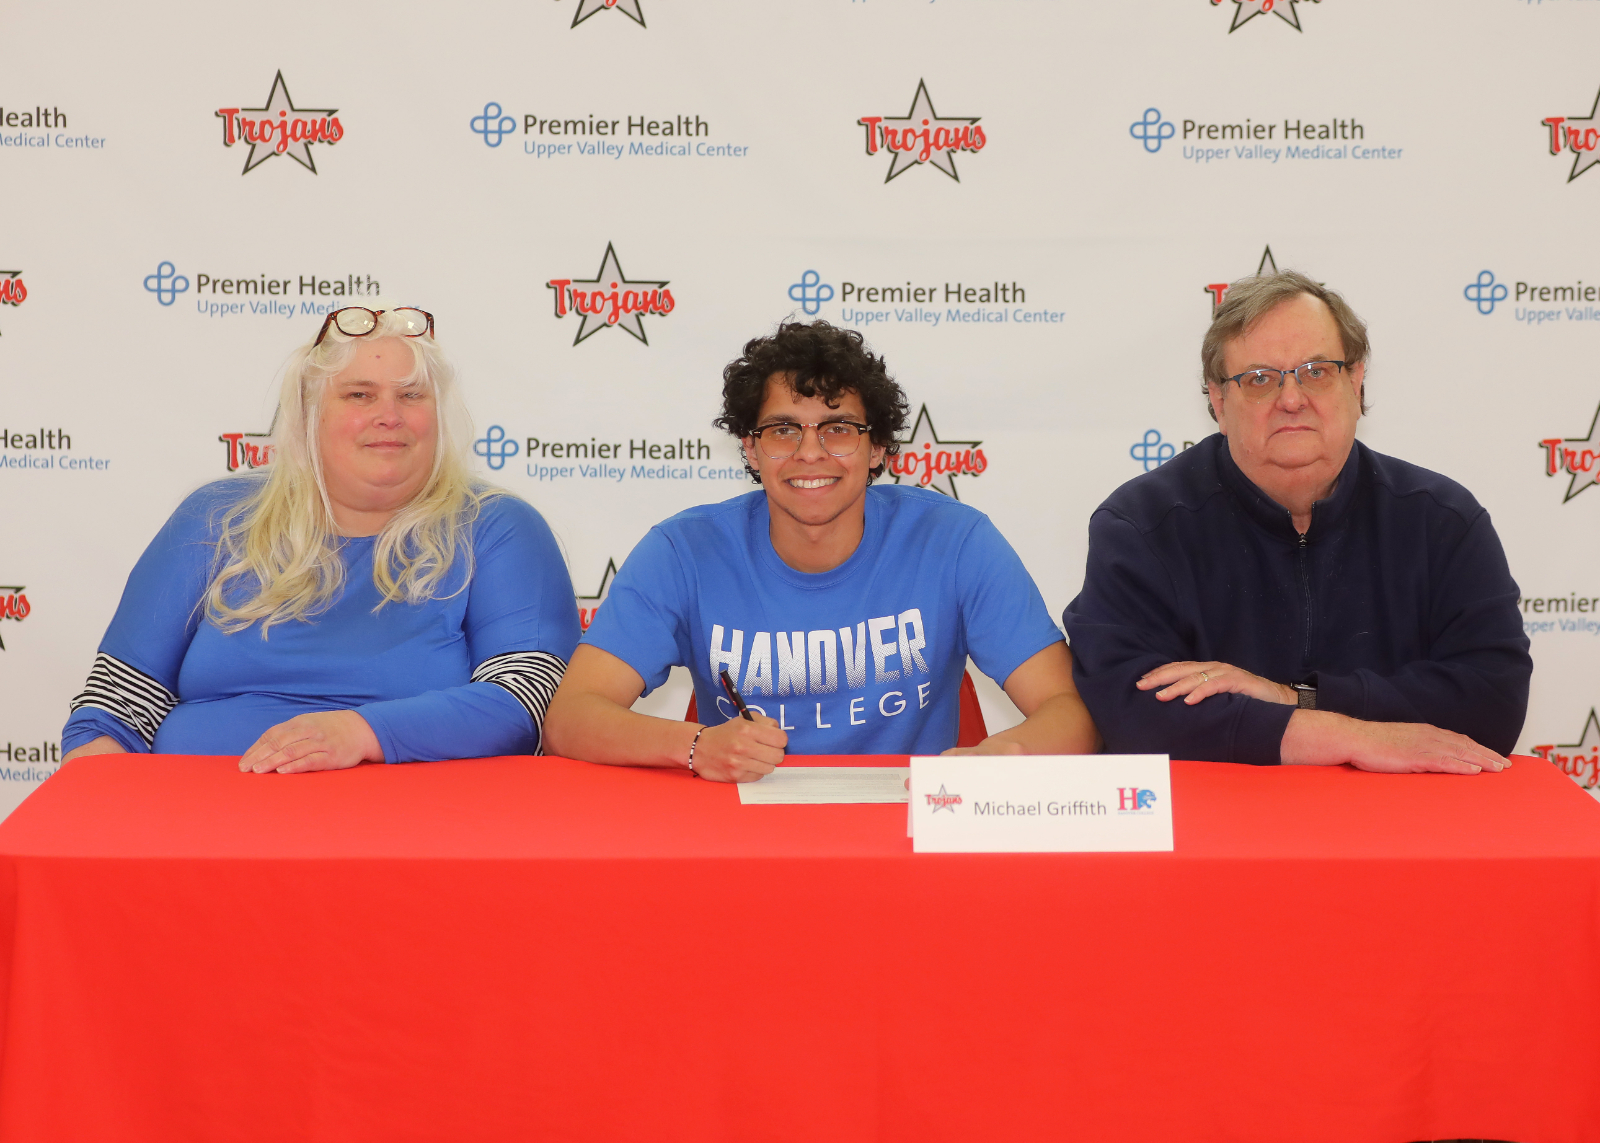 Michael Griffith Signs with Hanover College